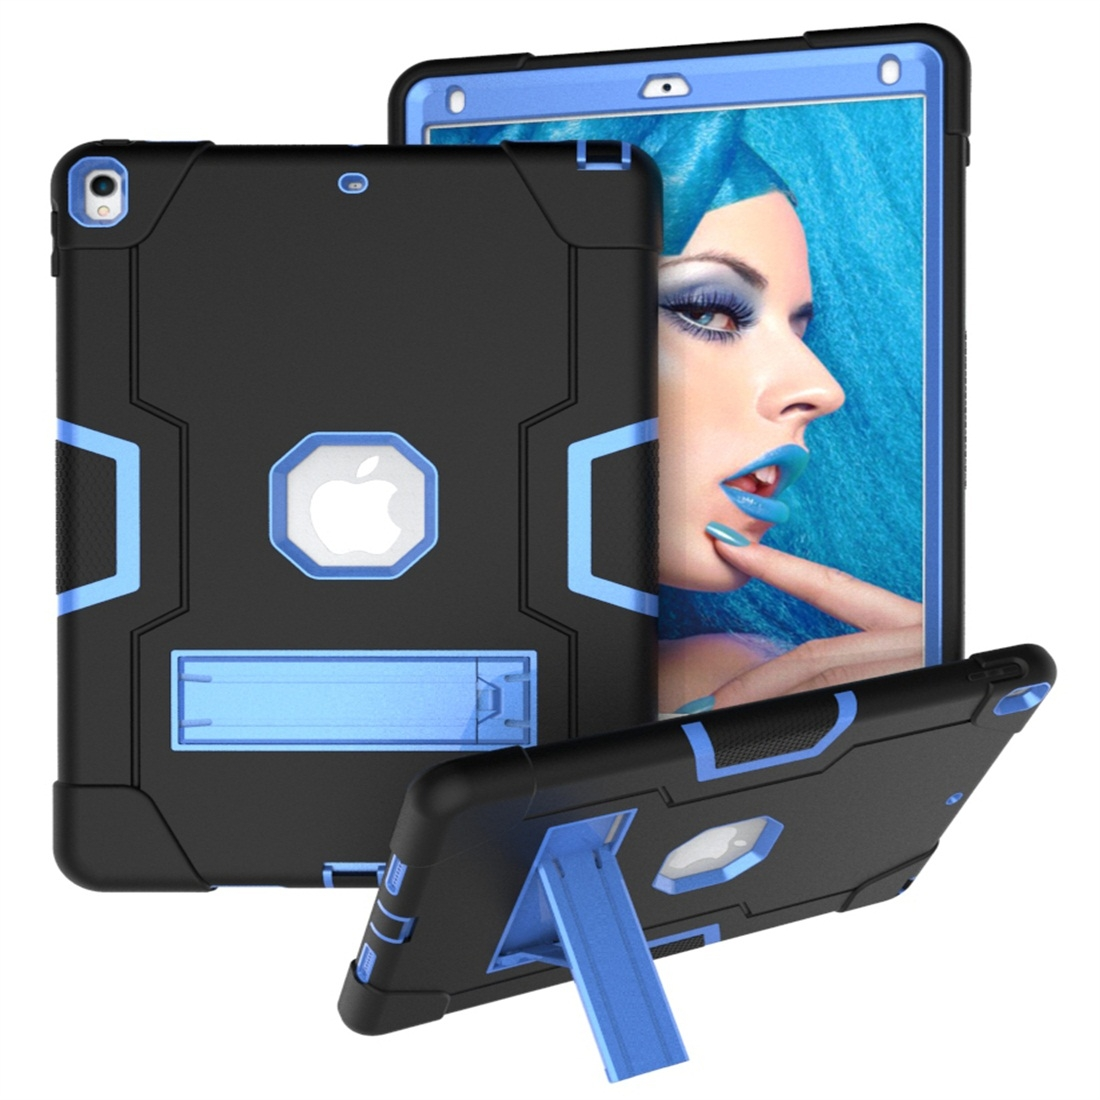 iPad 10.5 Case Contrasting Color Tough Durable Armor Case (Black/Blue)